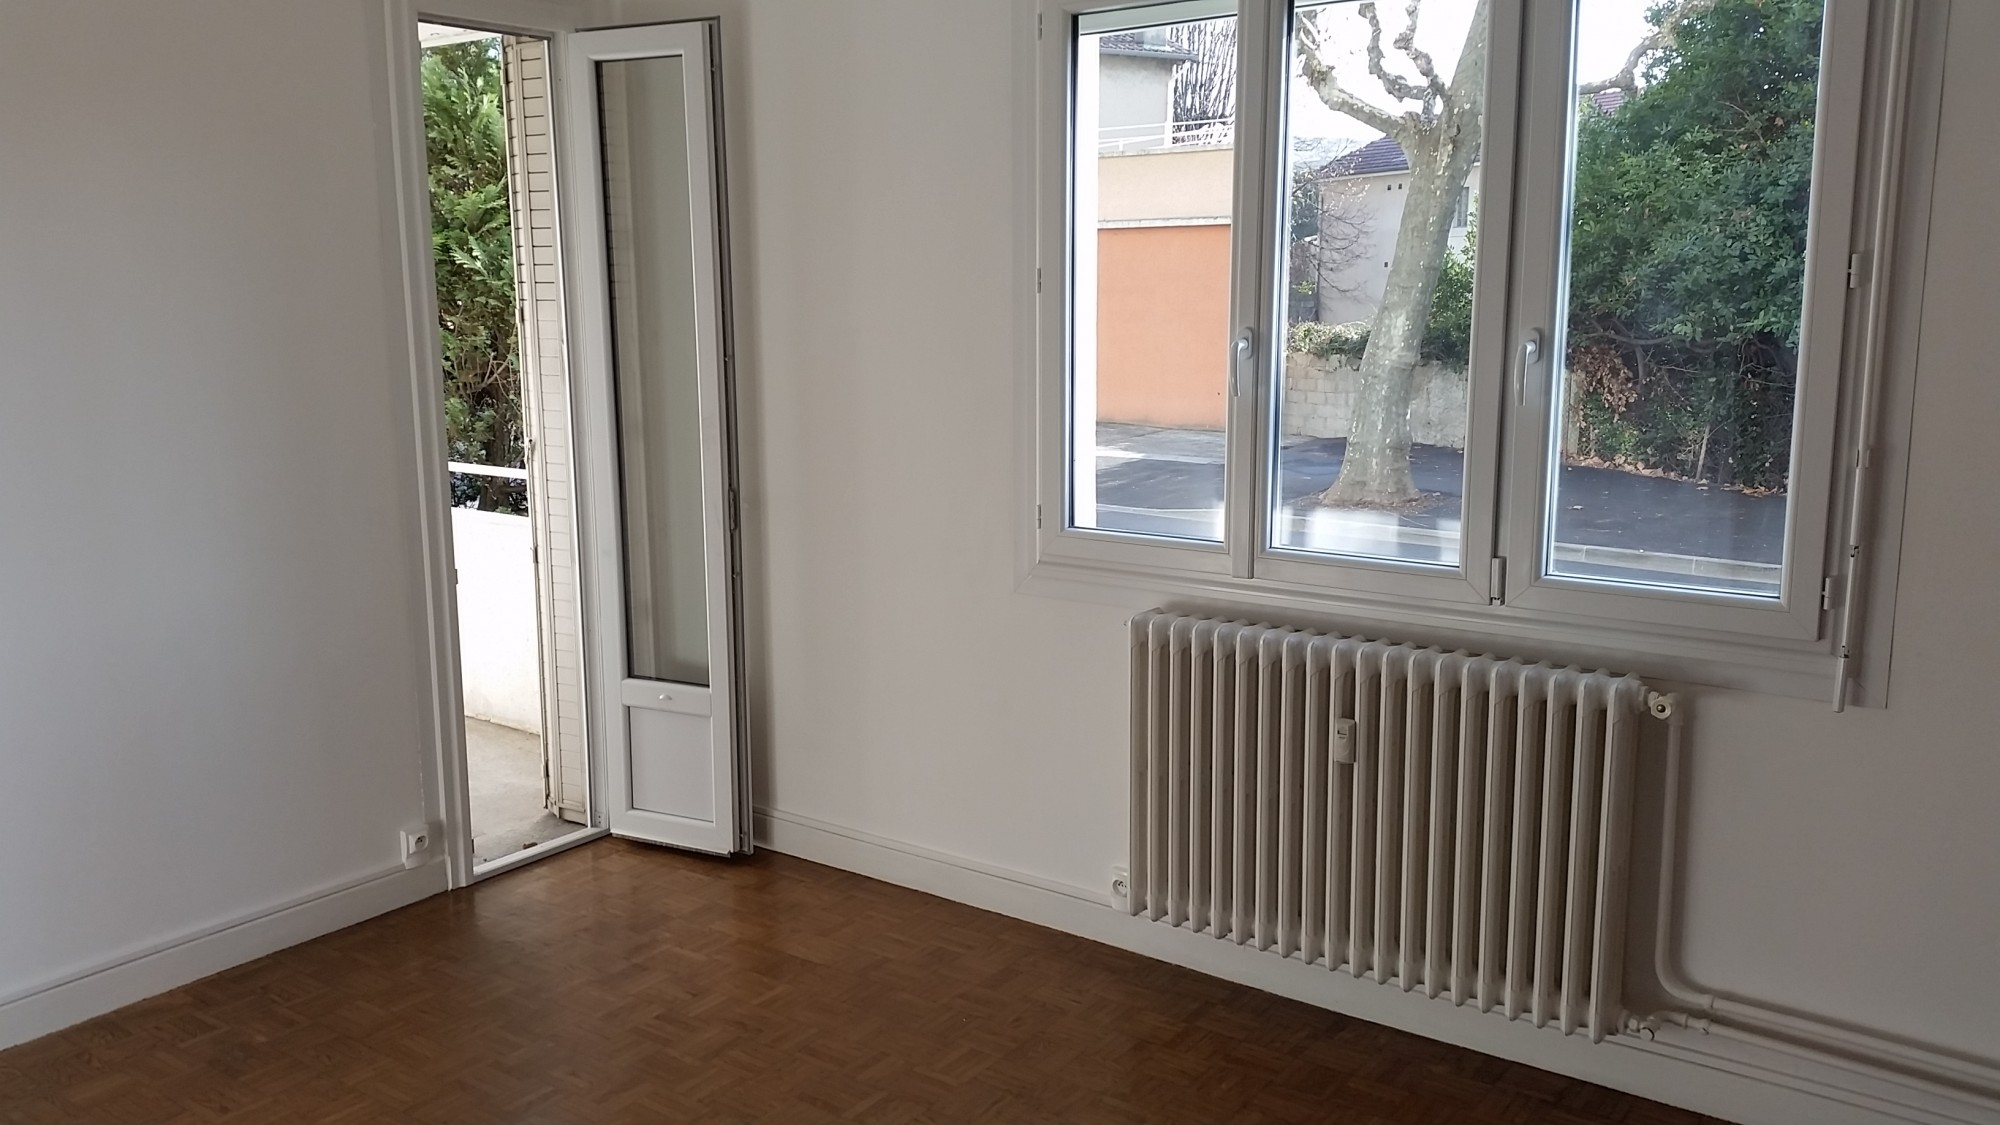 Appartement 2 chambres louer sur chateauvert valence for Agence immobiliere valence